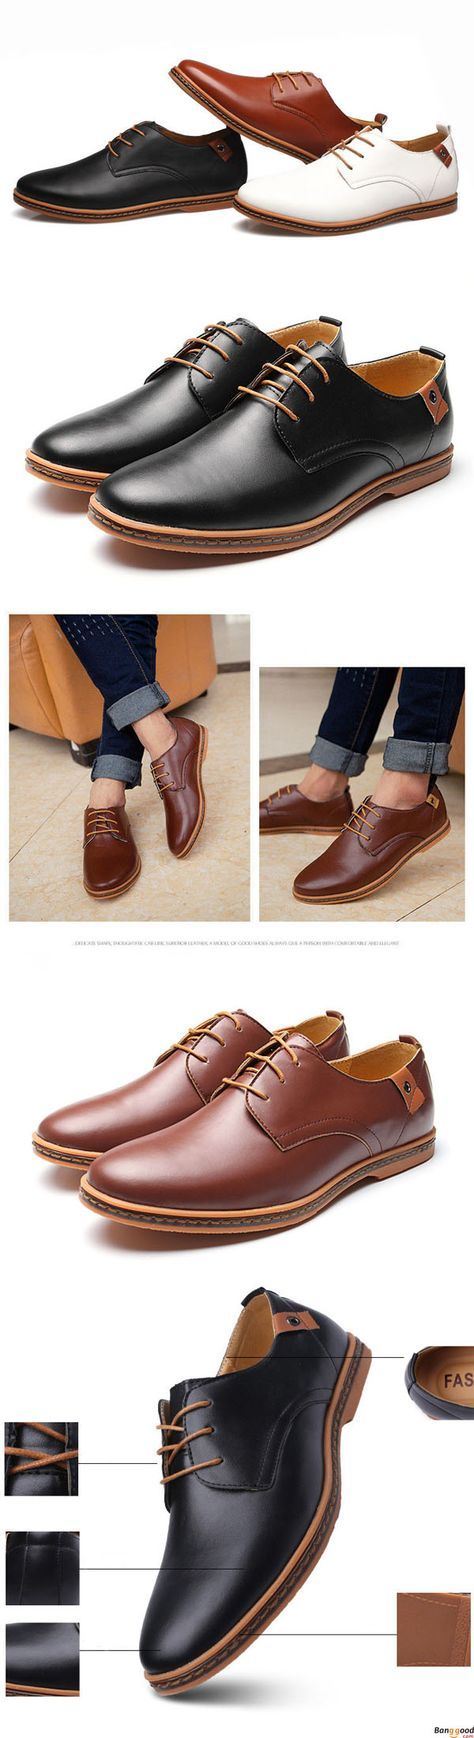 US$35.89+ Free Shipping. Large US Size 7.5-12 Men Business Shoes Flat Casual Soft Oxfords Shoes. Men's style, chic style, fashion style. Shop at banggood with super affordable price.